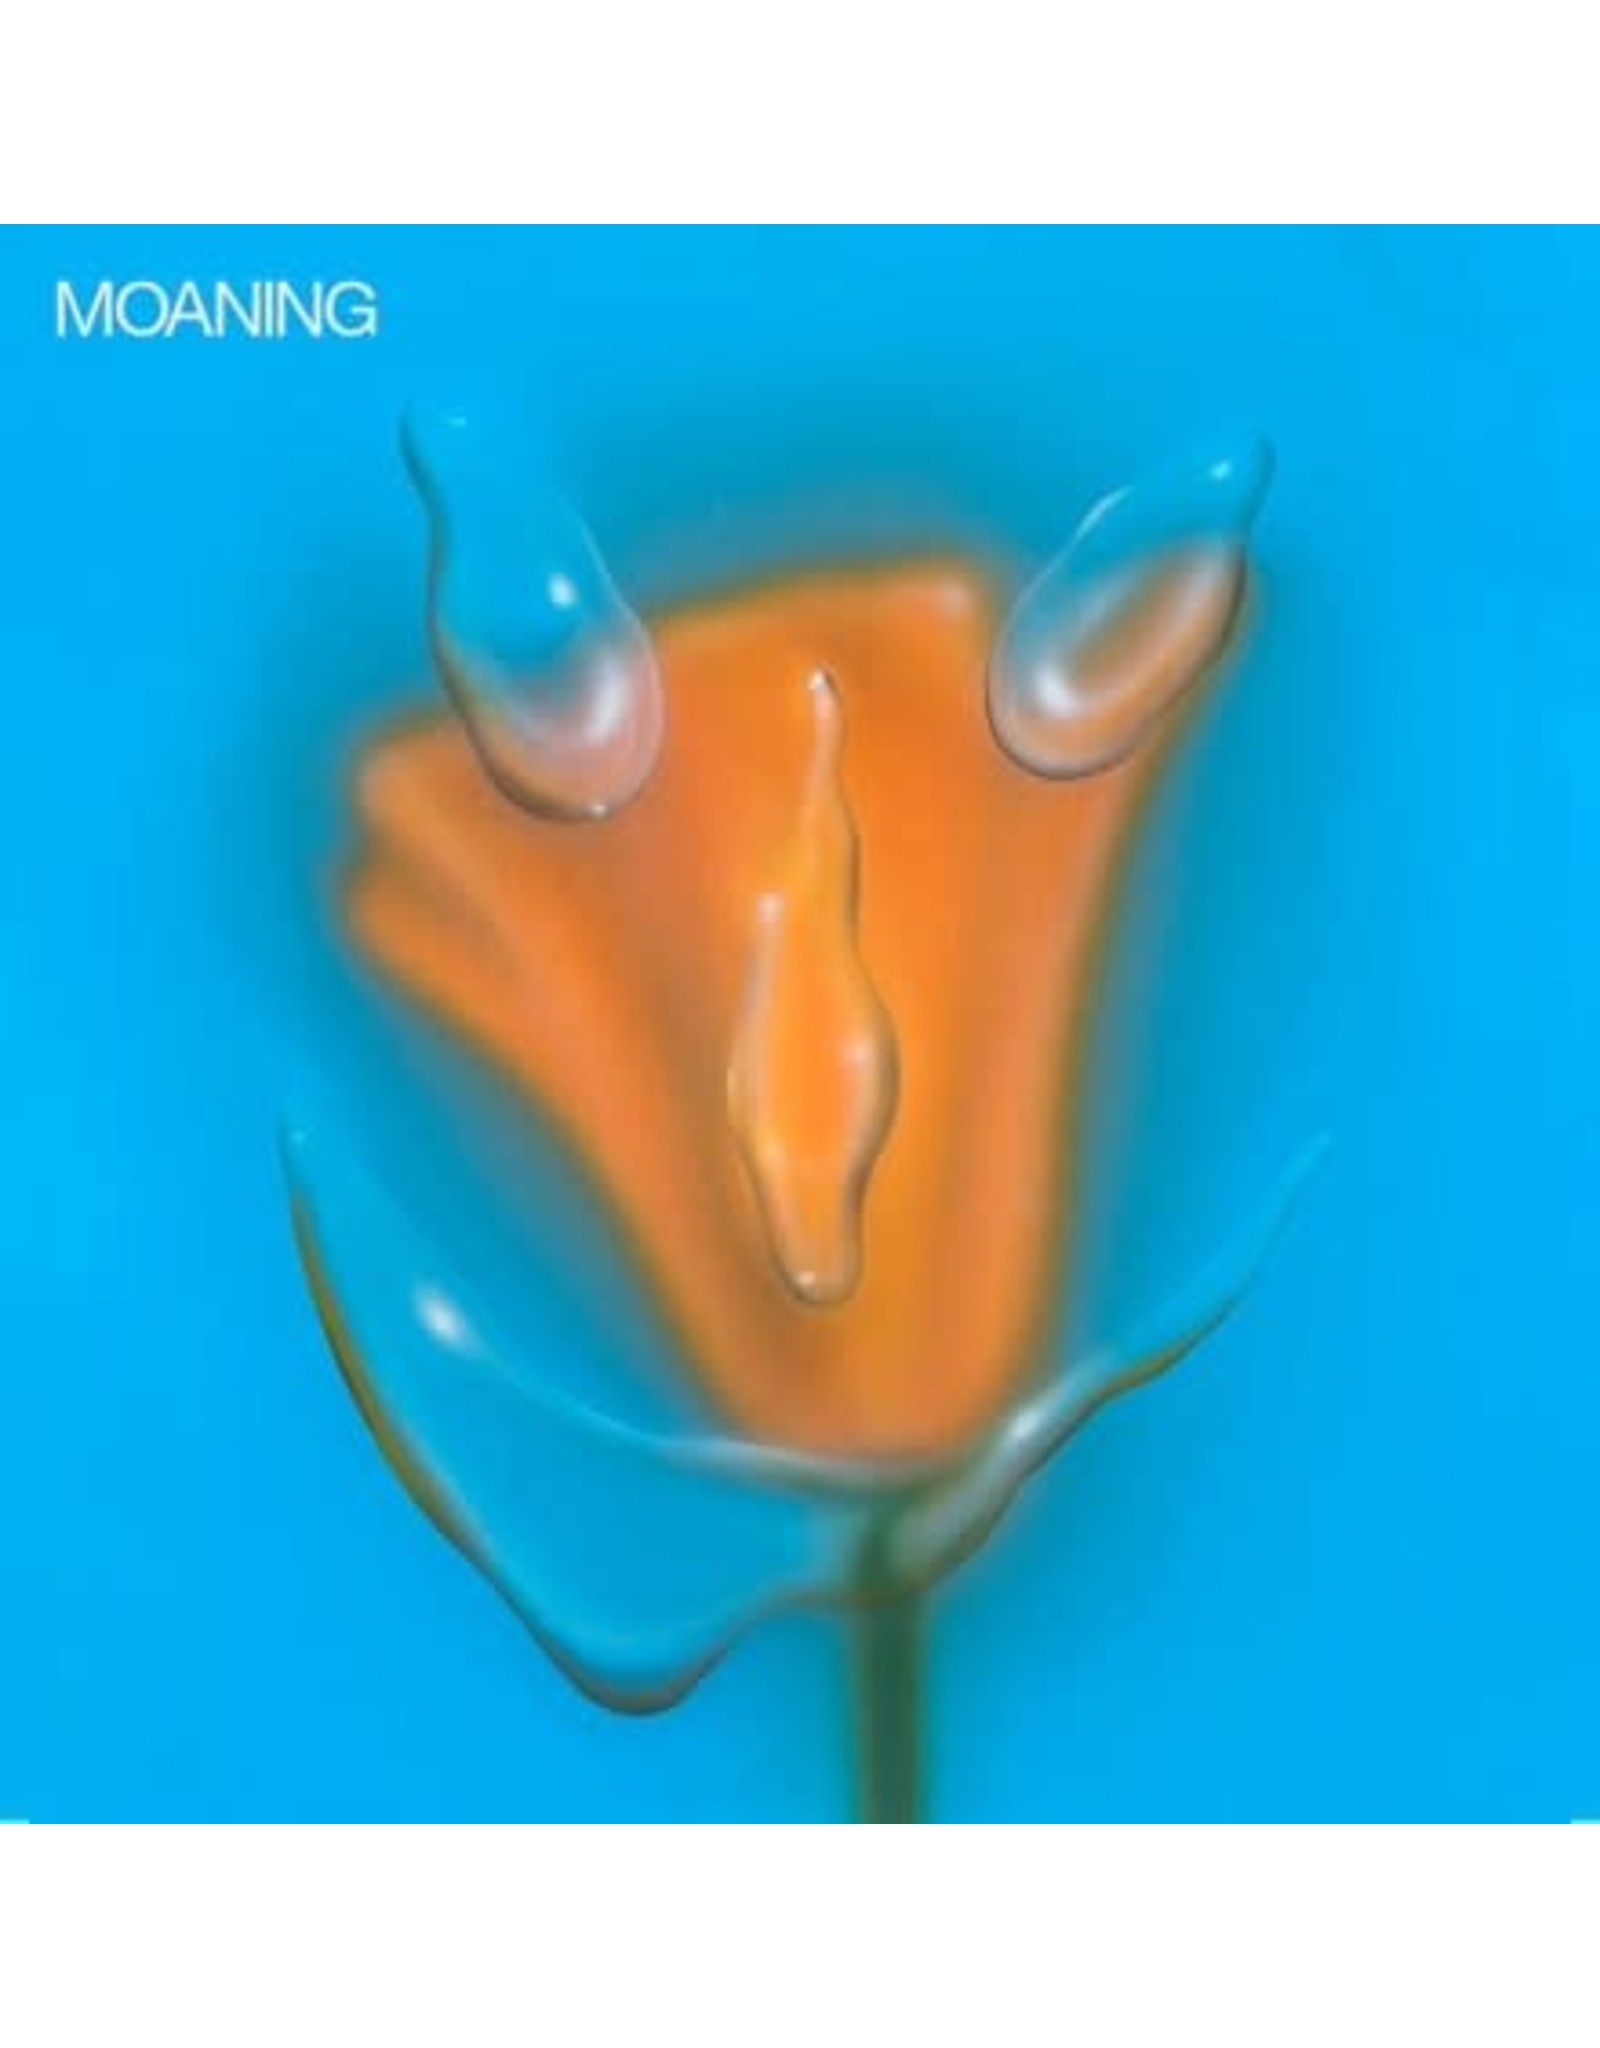 Sub Pop Moaning: Uneasy Laughter (Indie only Loser Edition Clear w/blue and orange)  LP